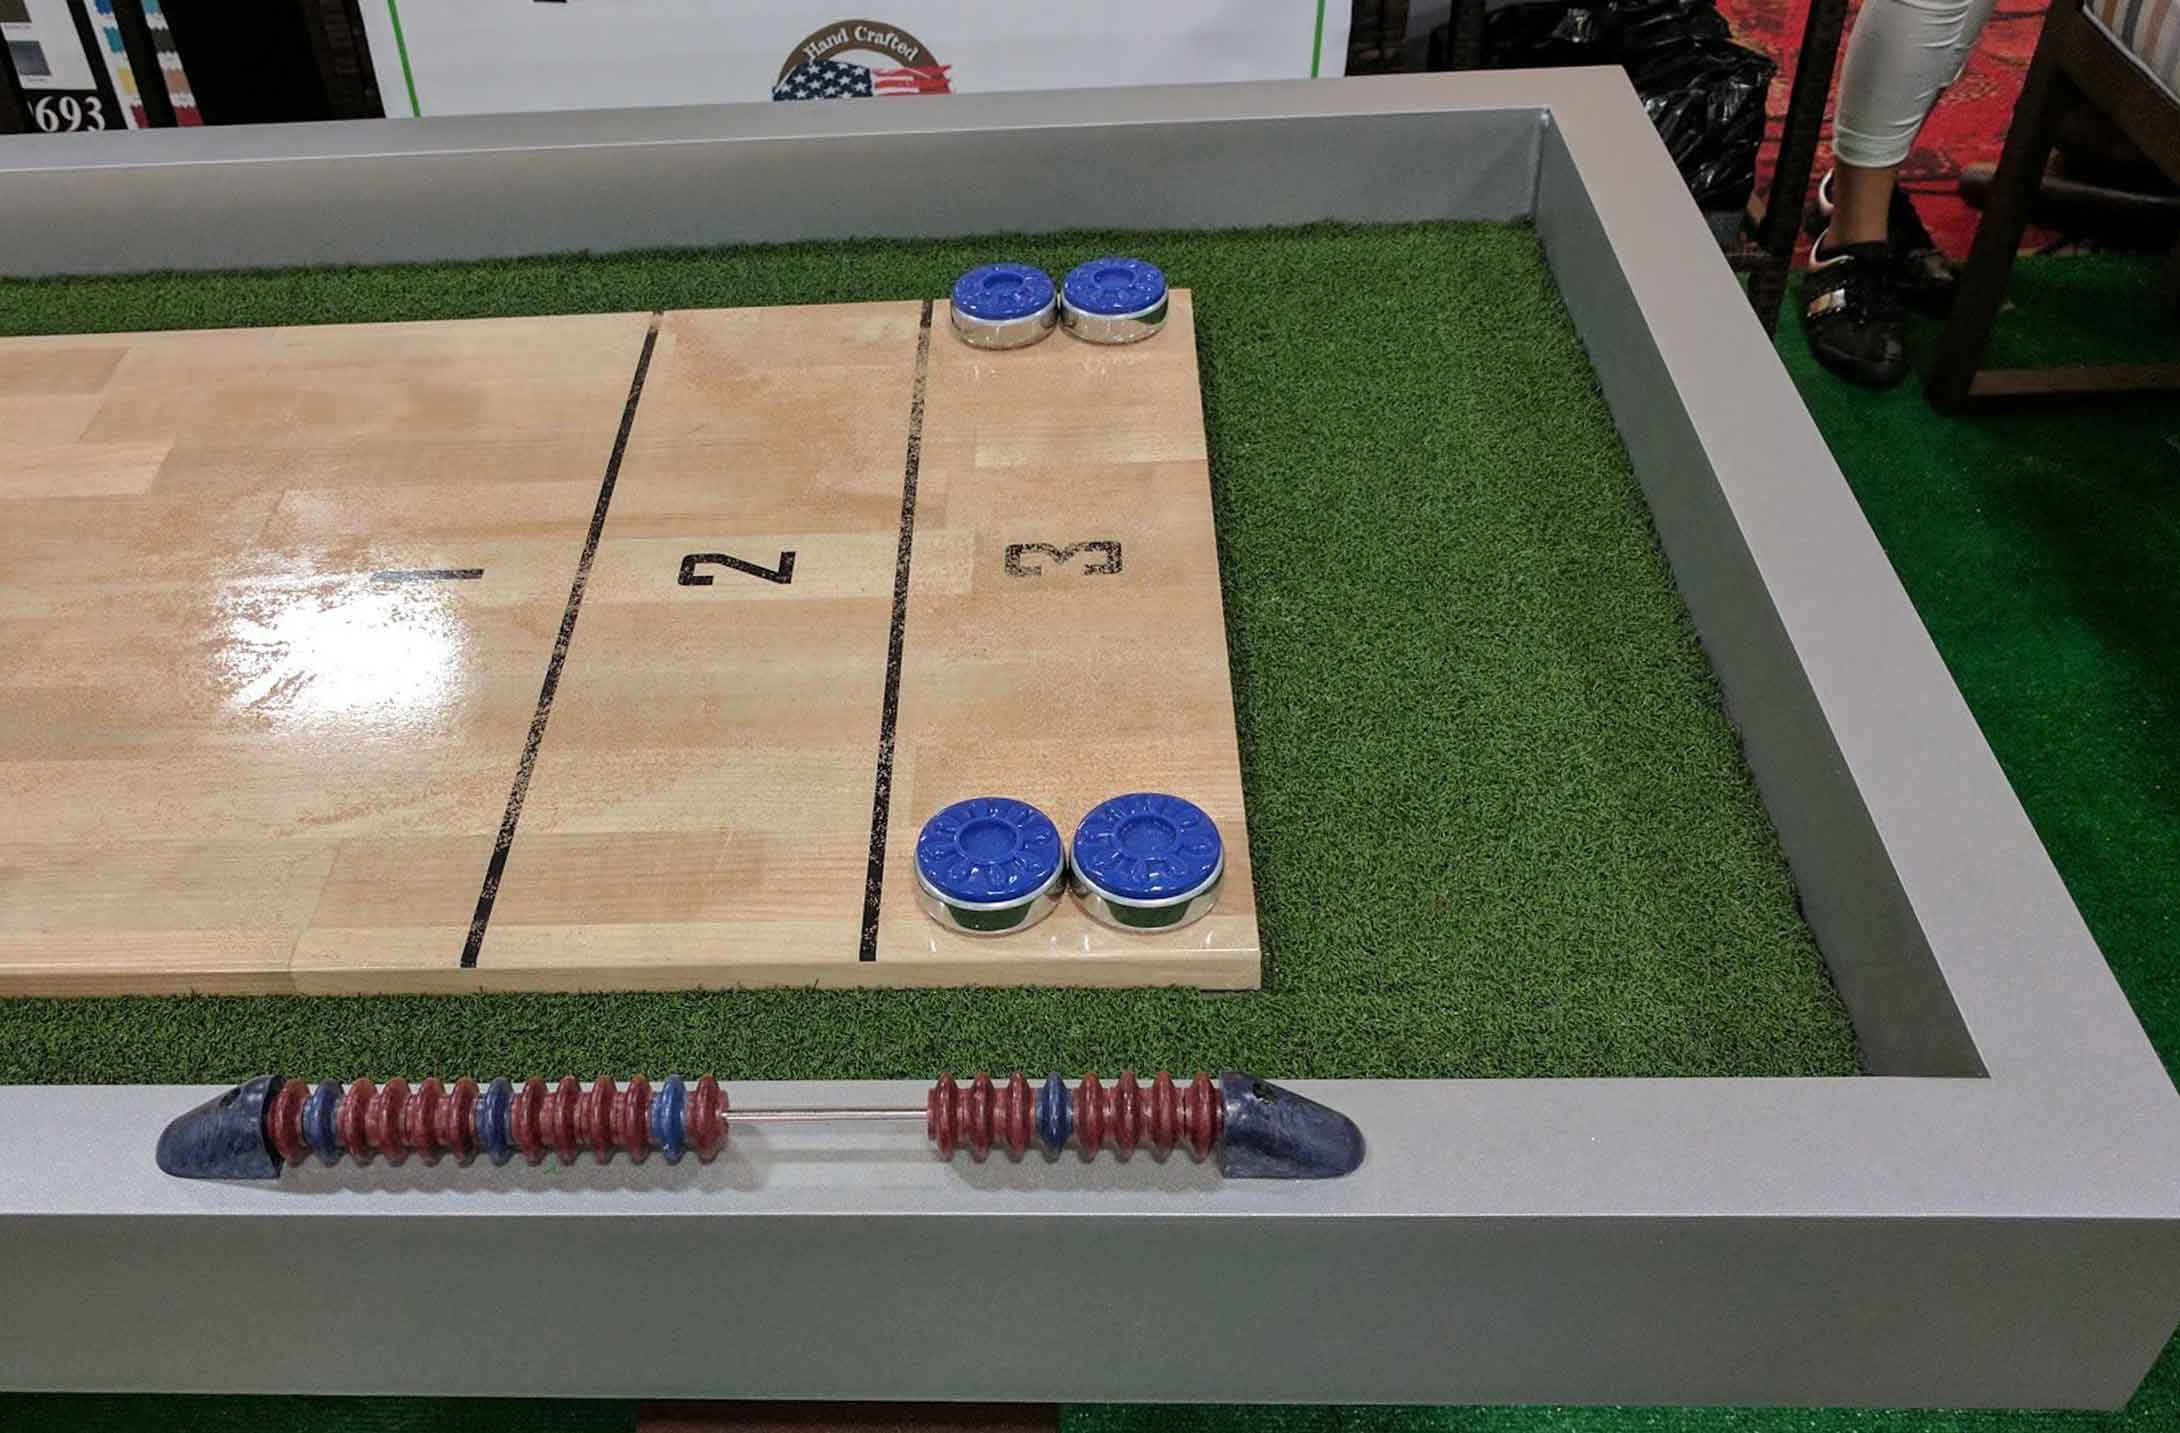 Close up image of playing surface on R&R Outdoors All Weather Billiards Rock Solid Shuffleboard game table